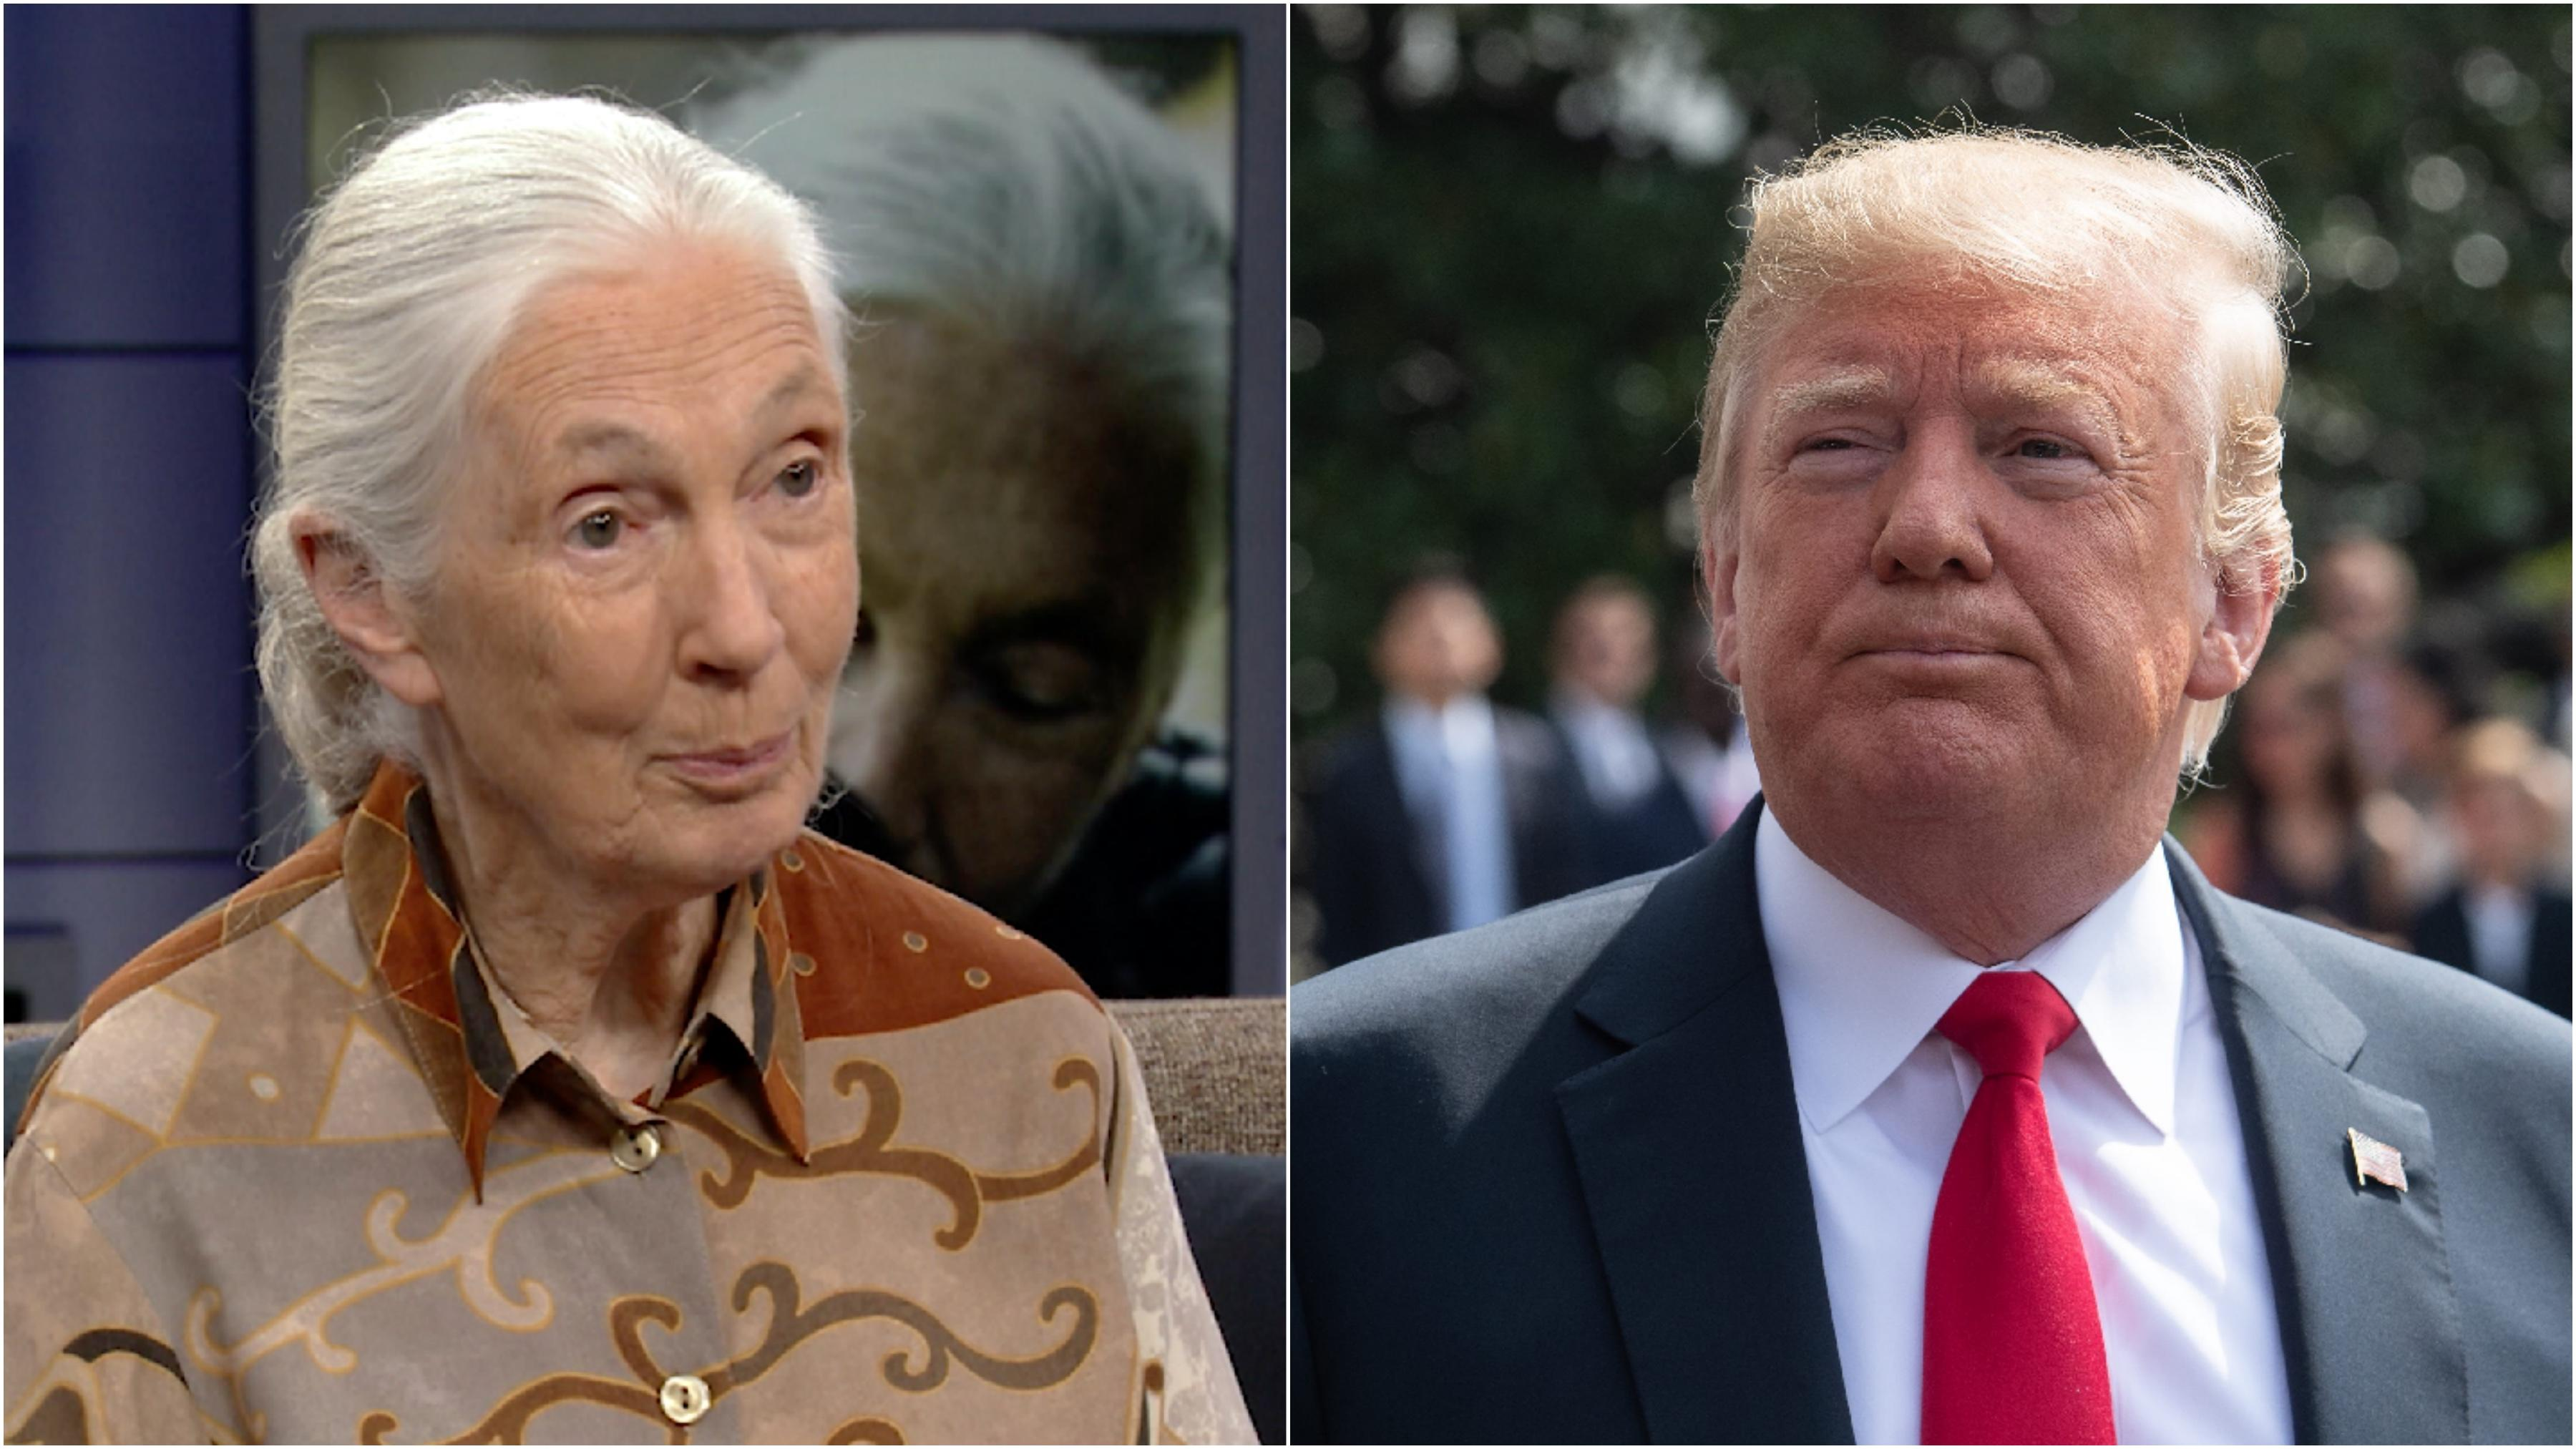 Jane Goodall on the 'shocking' damage Donald Trump has done to the environment